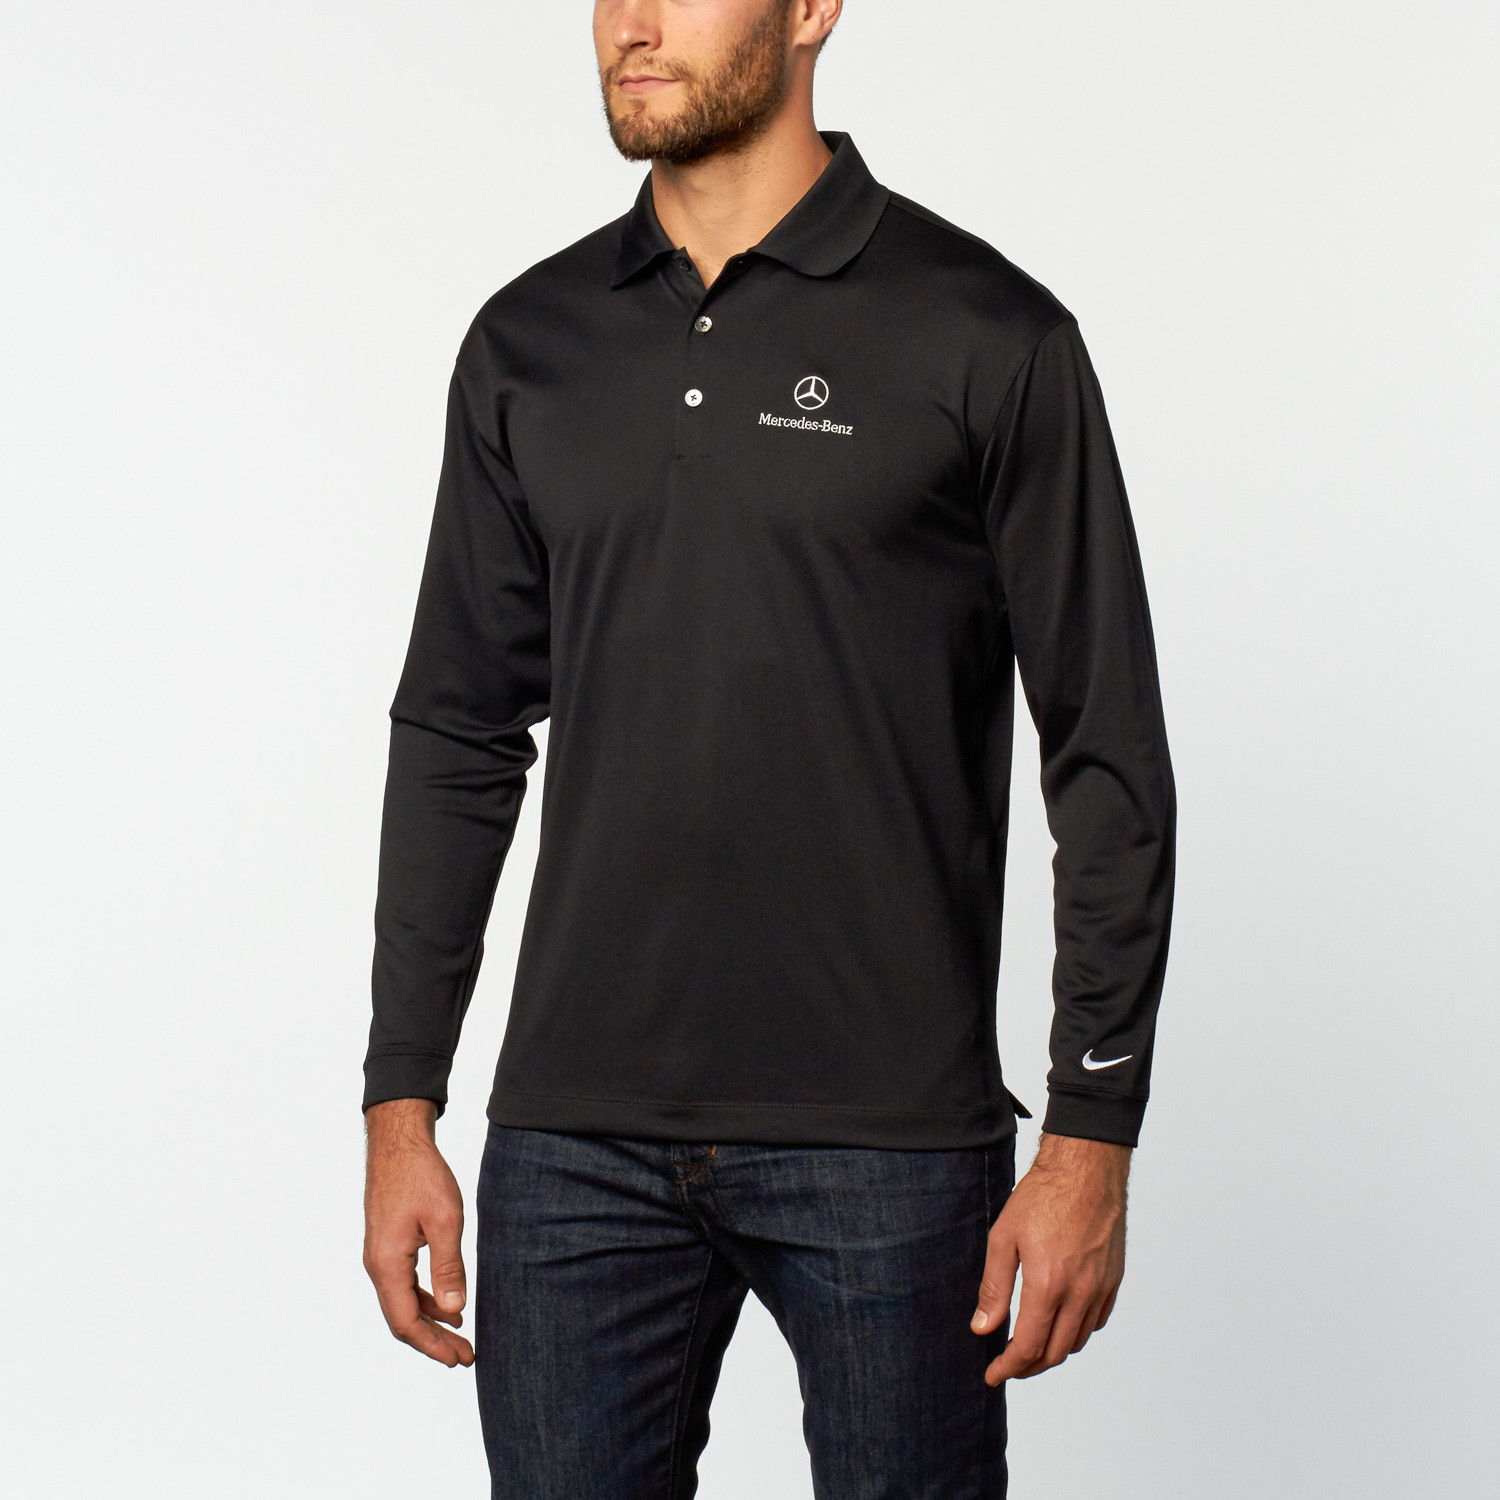 Nike long sleeve stretch polo black s mercedes benz for Mercedes benz sweater